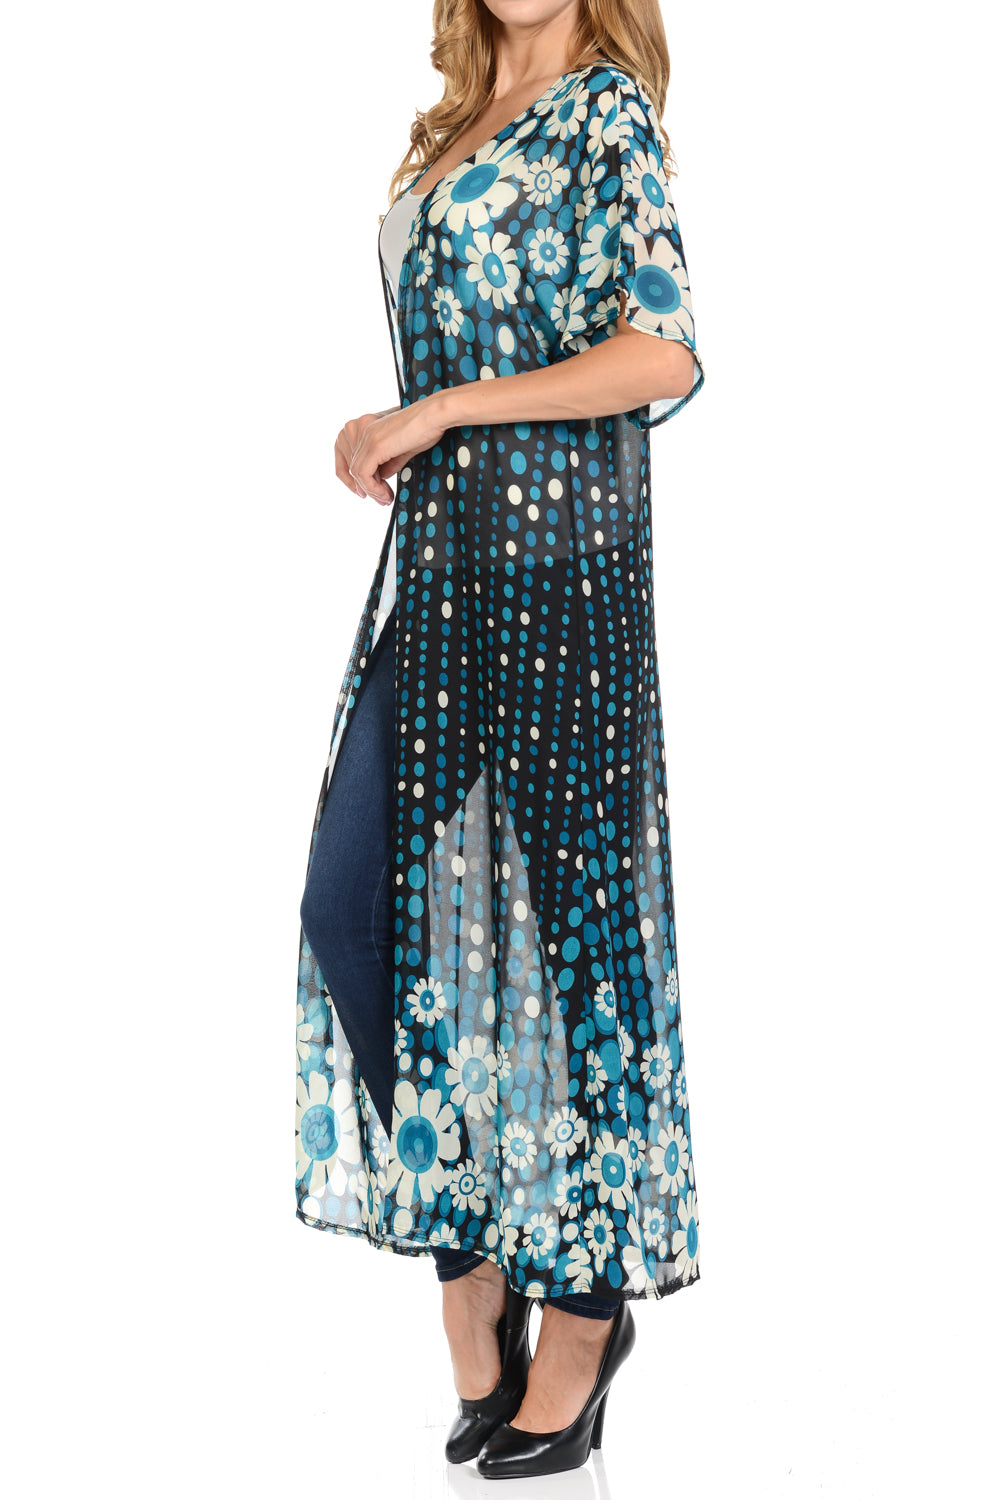 c835d4efb4 ... Long maxi Cardigan See through beach cover up Trendy Fashion item Four  seasons BlackTeal Color